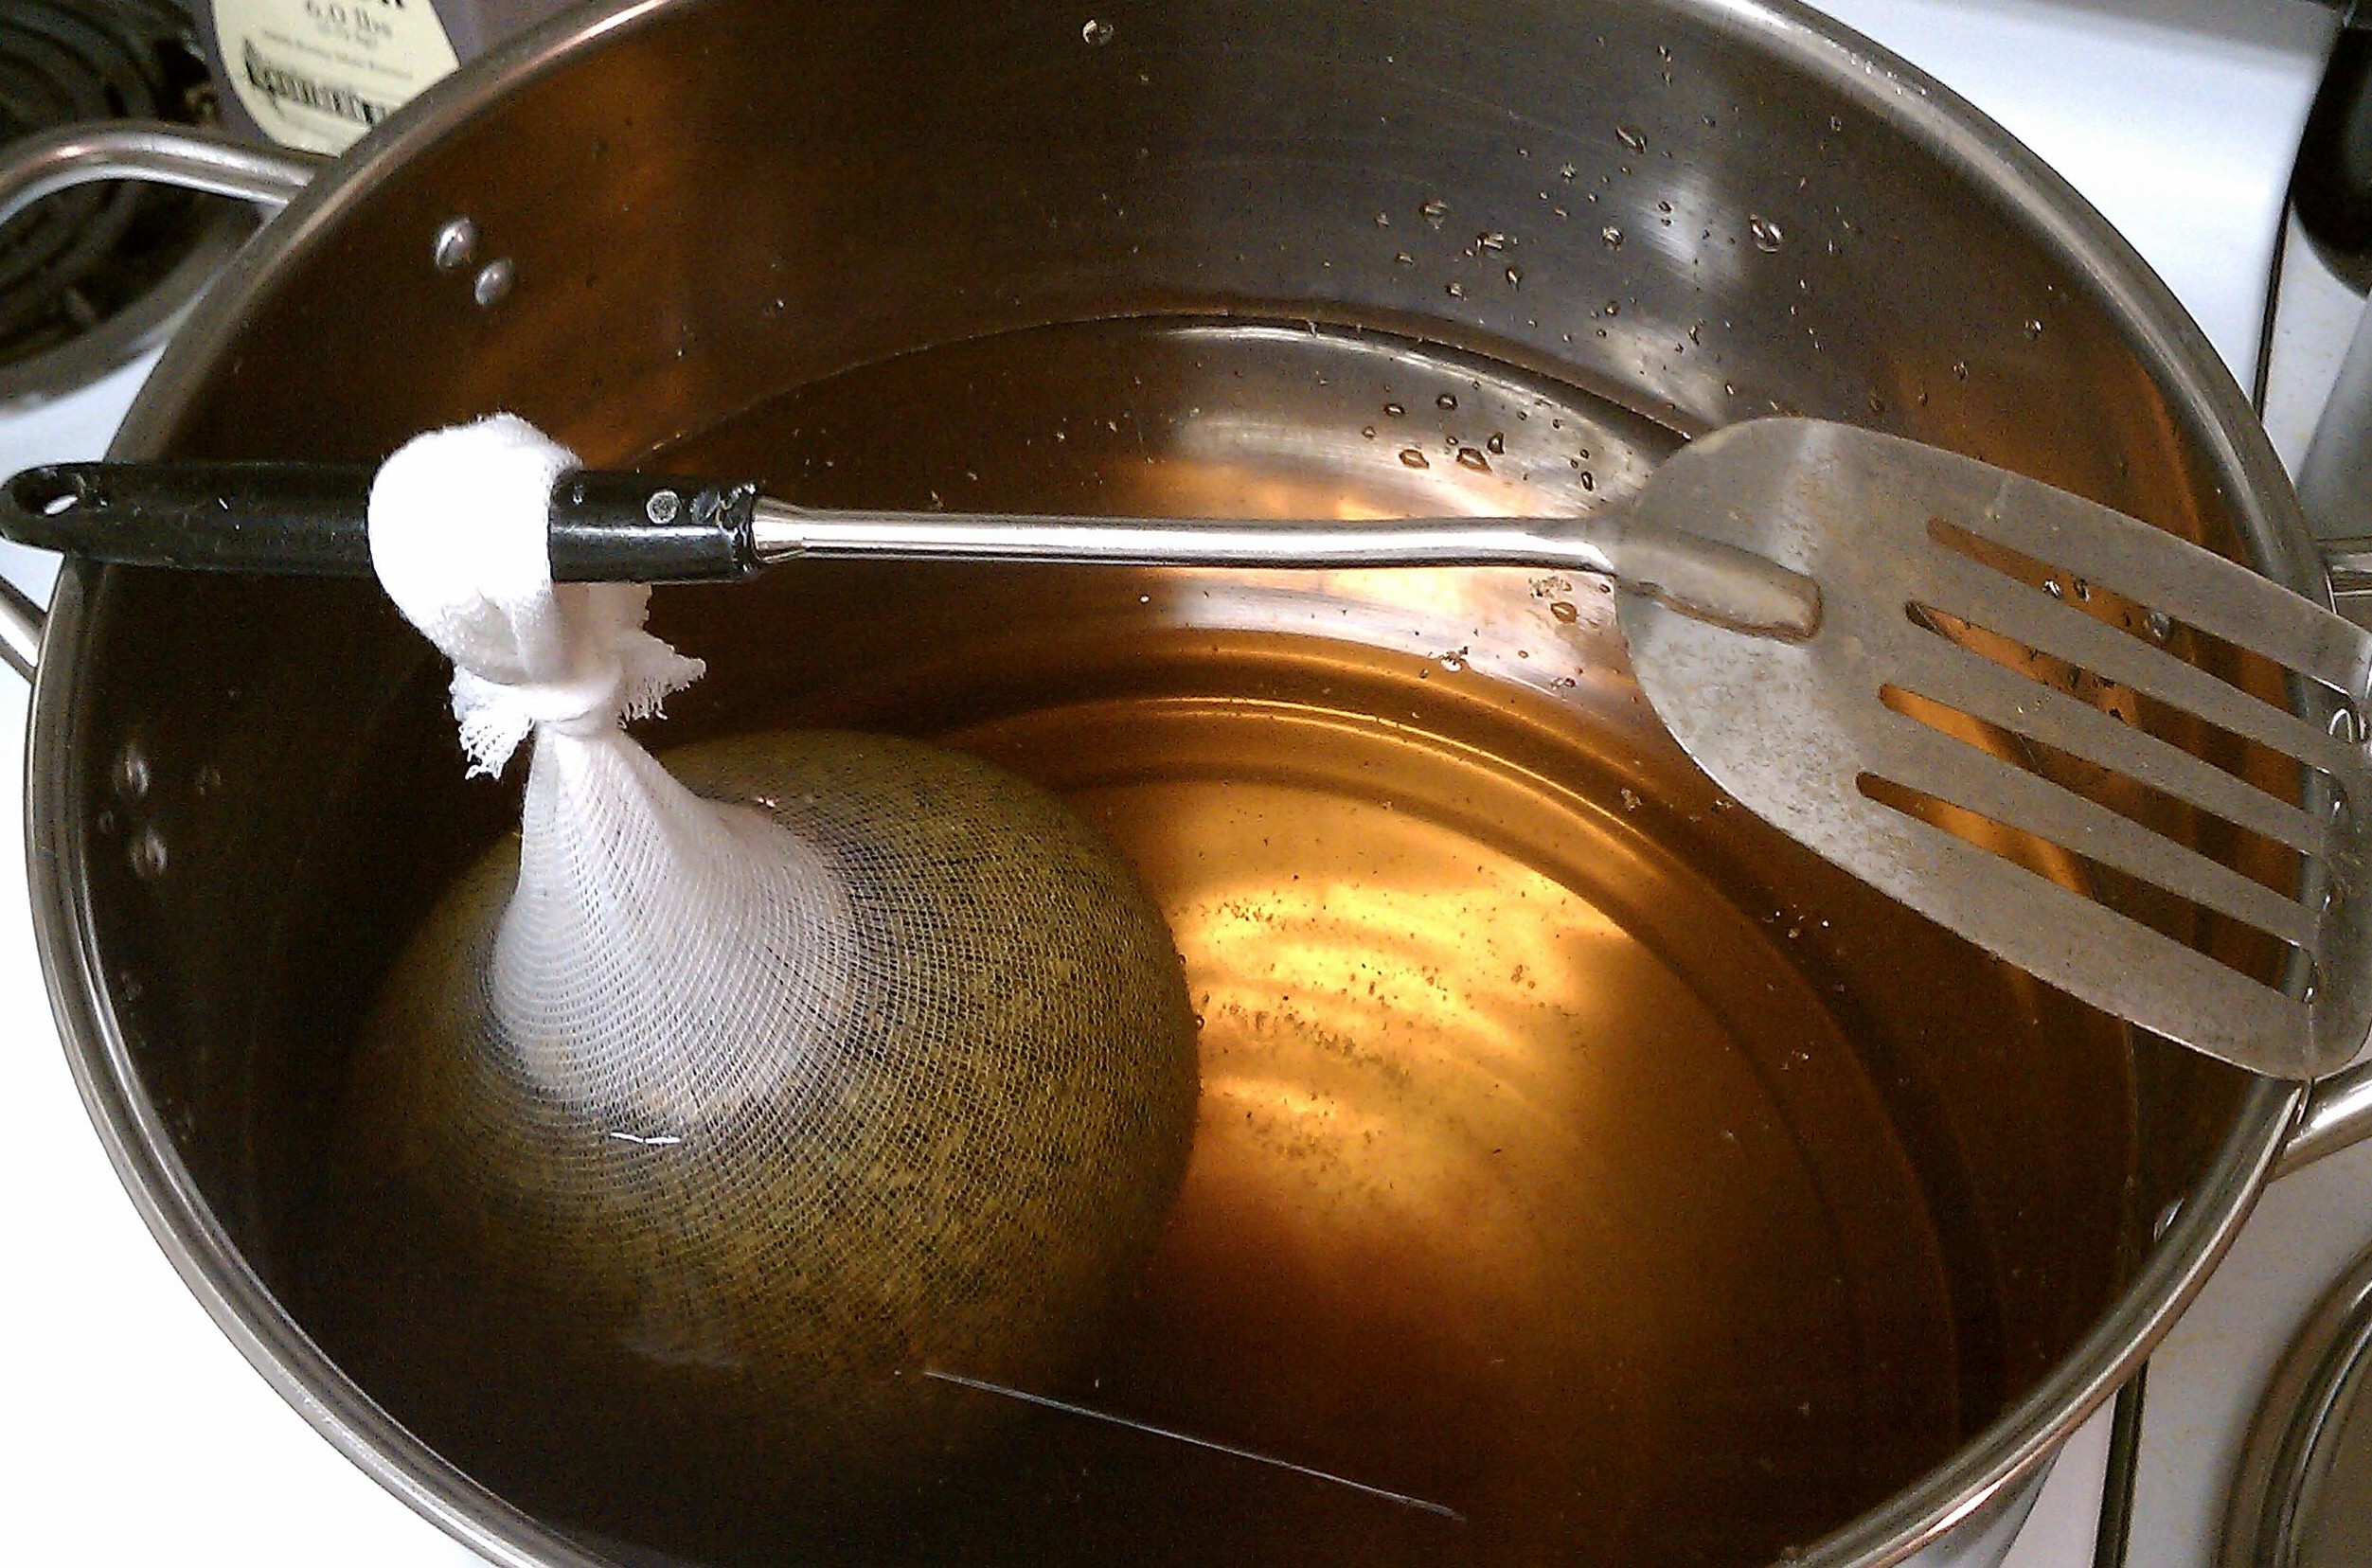 Steeping the specialty grains. Also, note the level of the water.